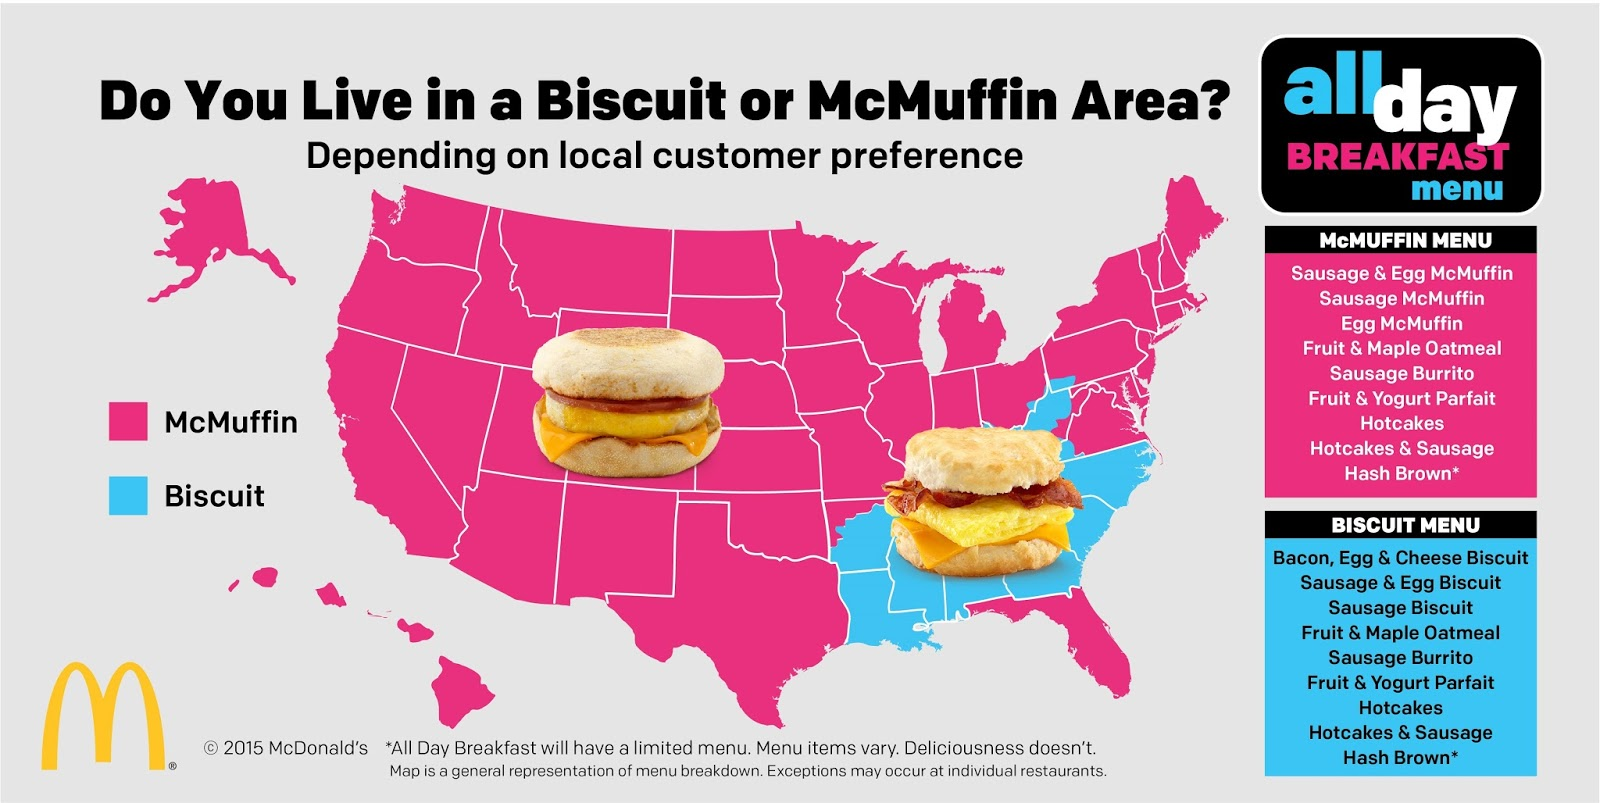 Do you live in a Biscuit or McMuffin area?